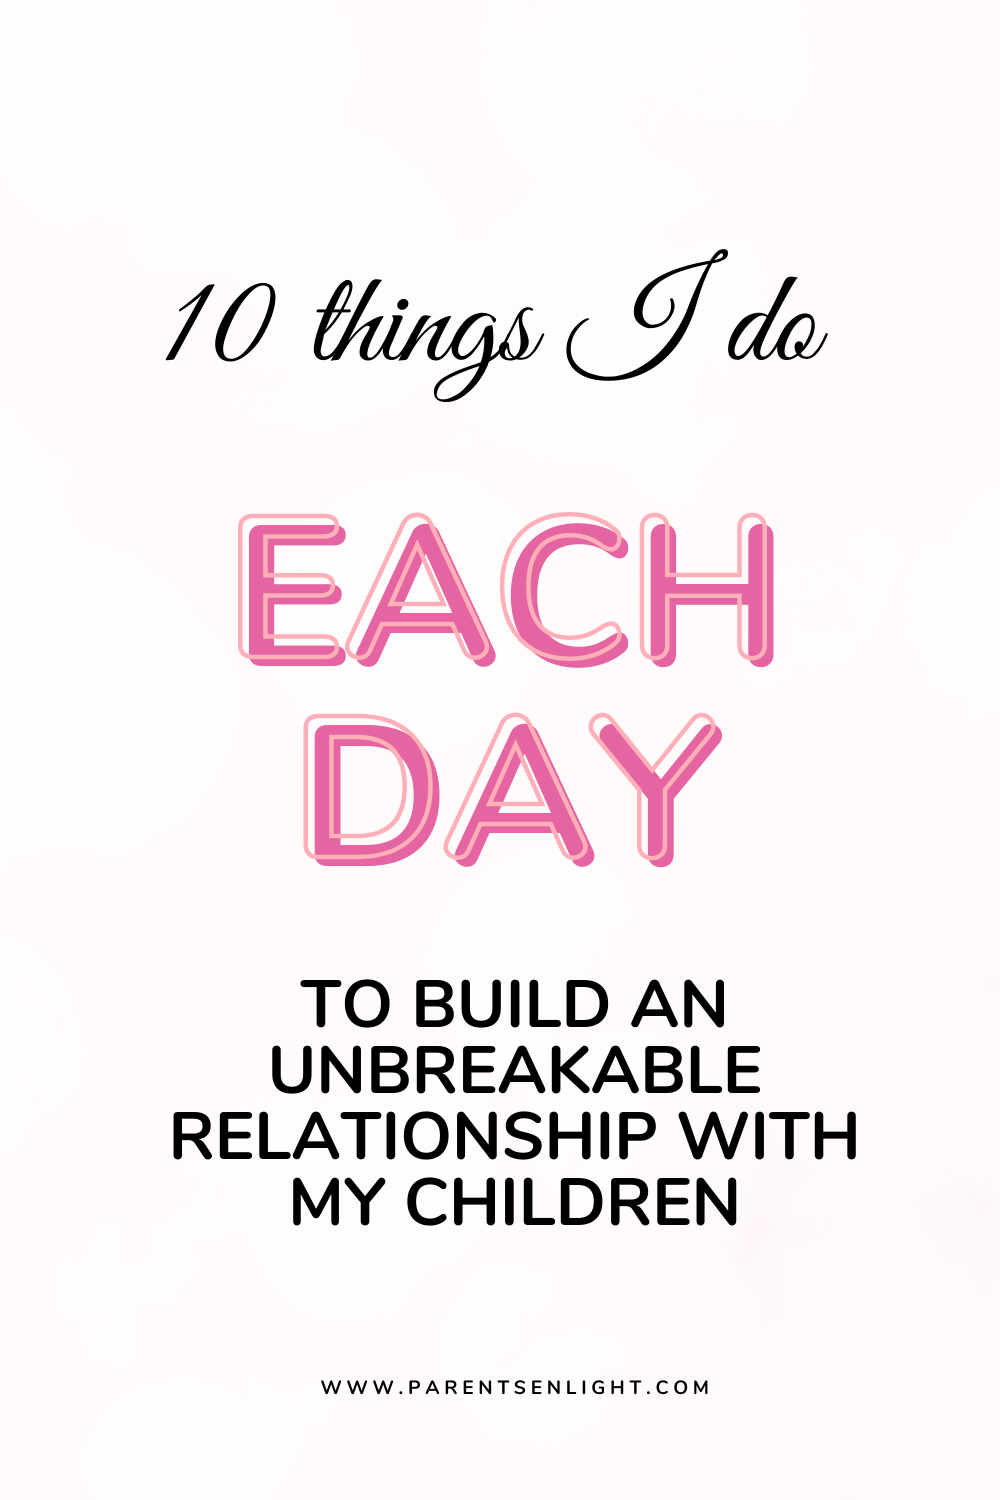 Parenting is the hardest job in the world, and it doesn't matter what everyone else might have to say. But the more fulfilling your relationship with your children is - the easier it all gets. Here are 10 things you can do every day to nurture the strongest relationship with your children #positiveparenting #mindfulparenting #positivemindset #positivemom #raisinghappykidsinhappyfamilies #parenting